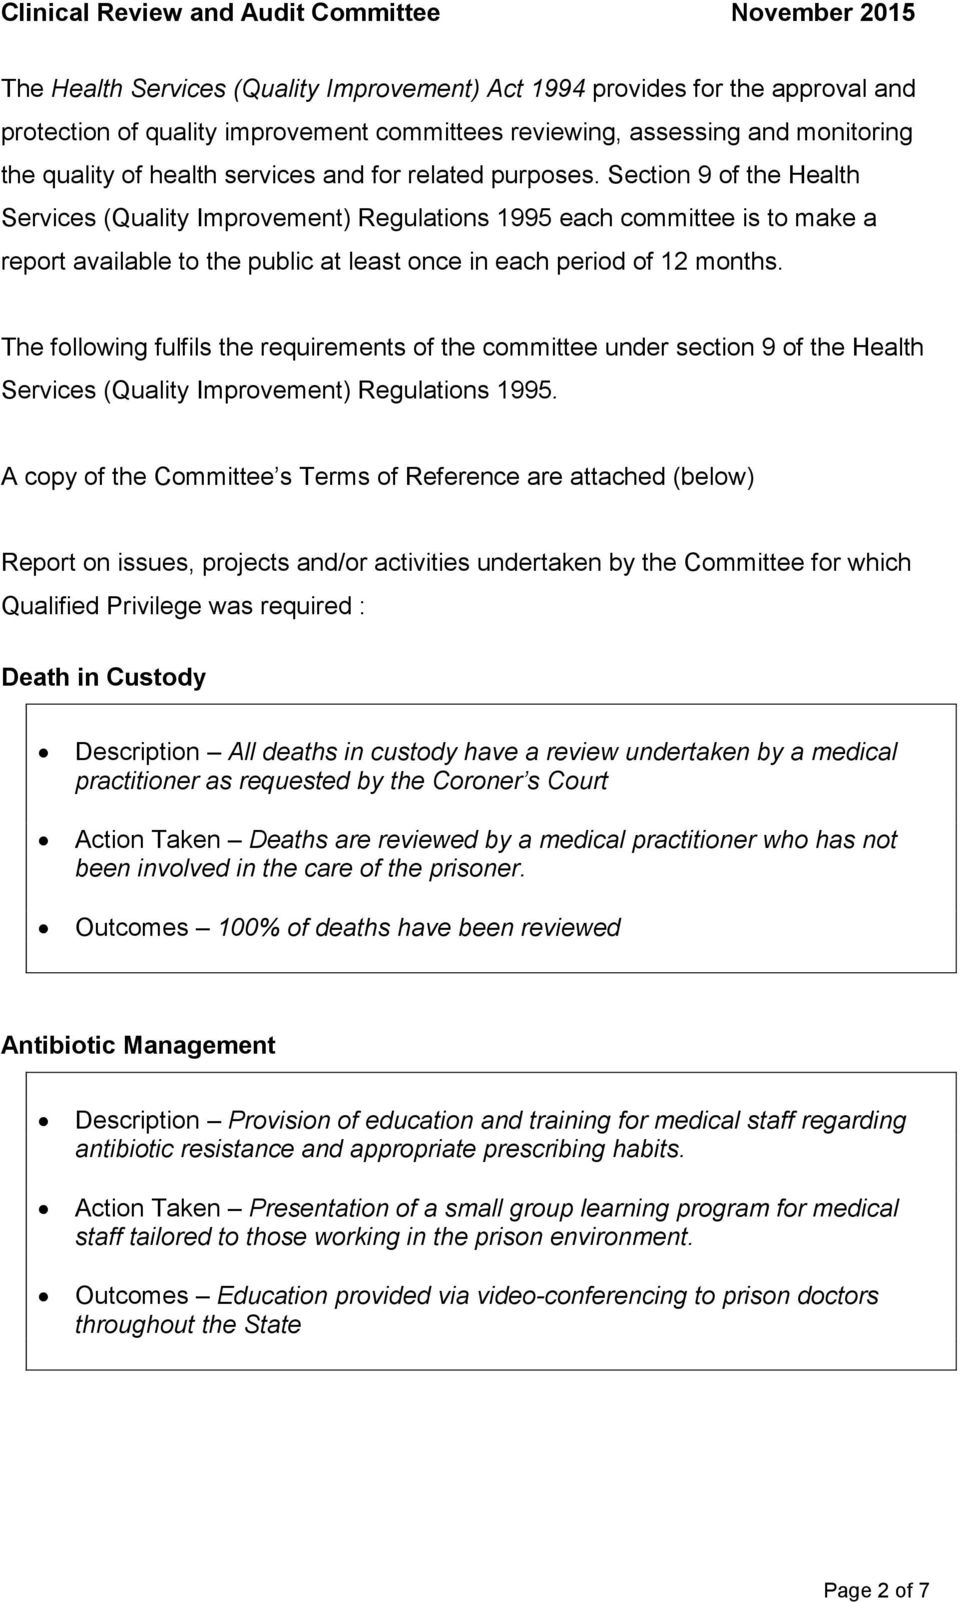 Section 9 of the Health Services (Quality Improvement) Regulations 1995 each committee is to make a report available to the public at least once in each period of 12 months.